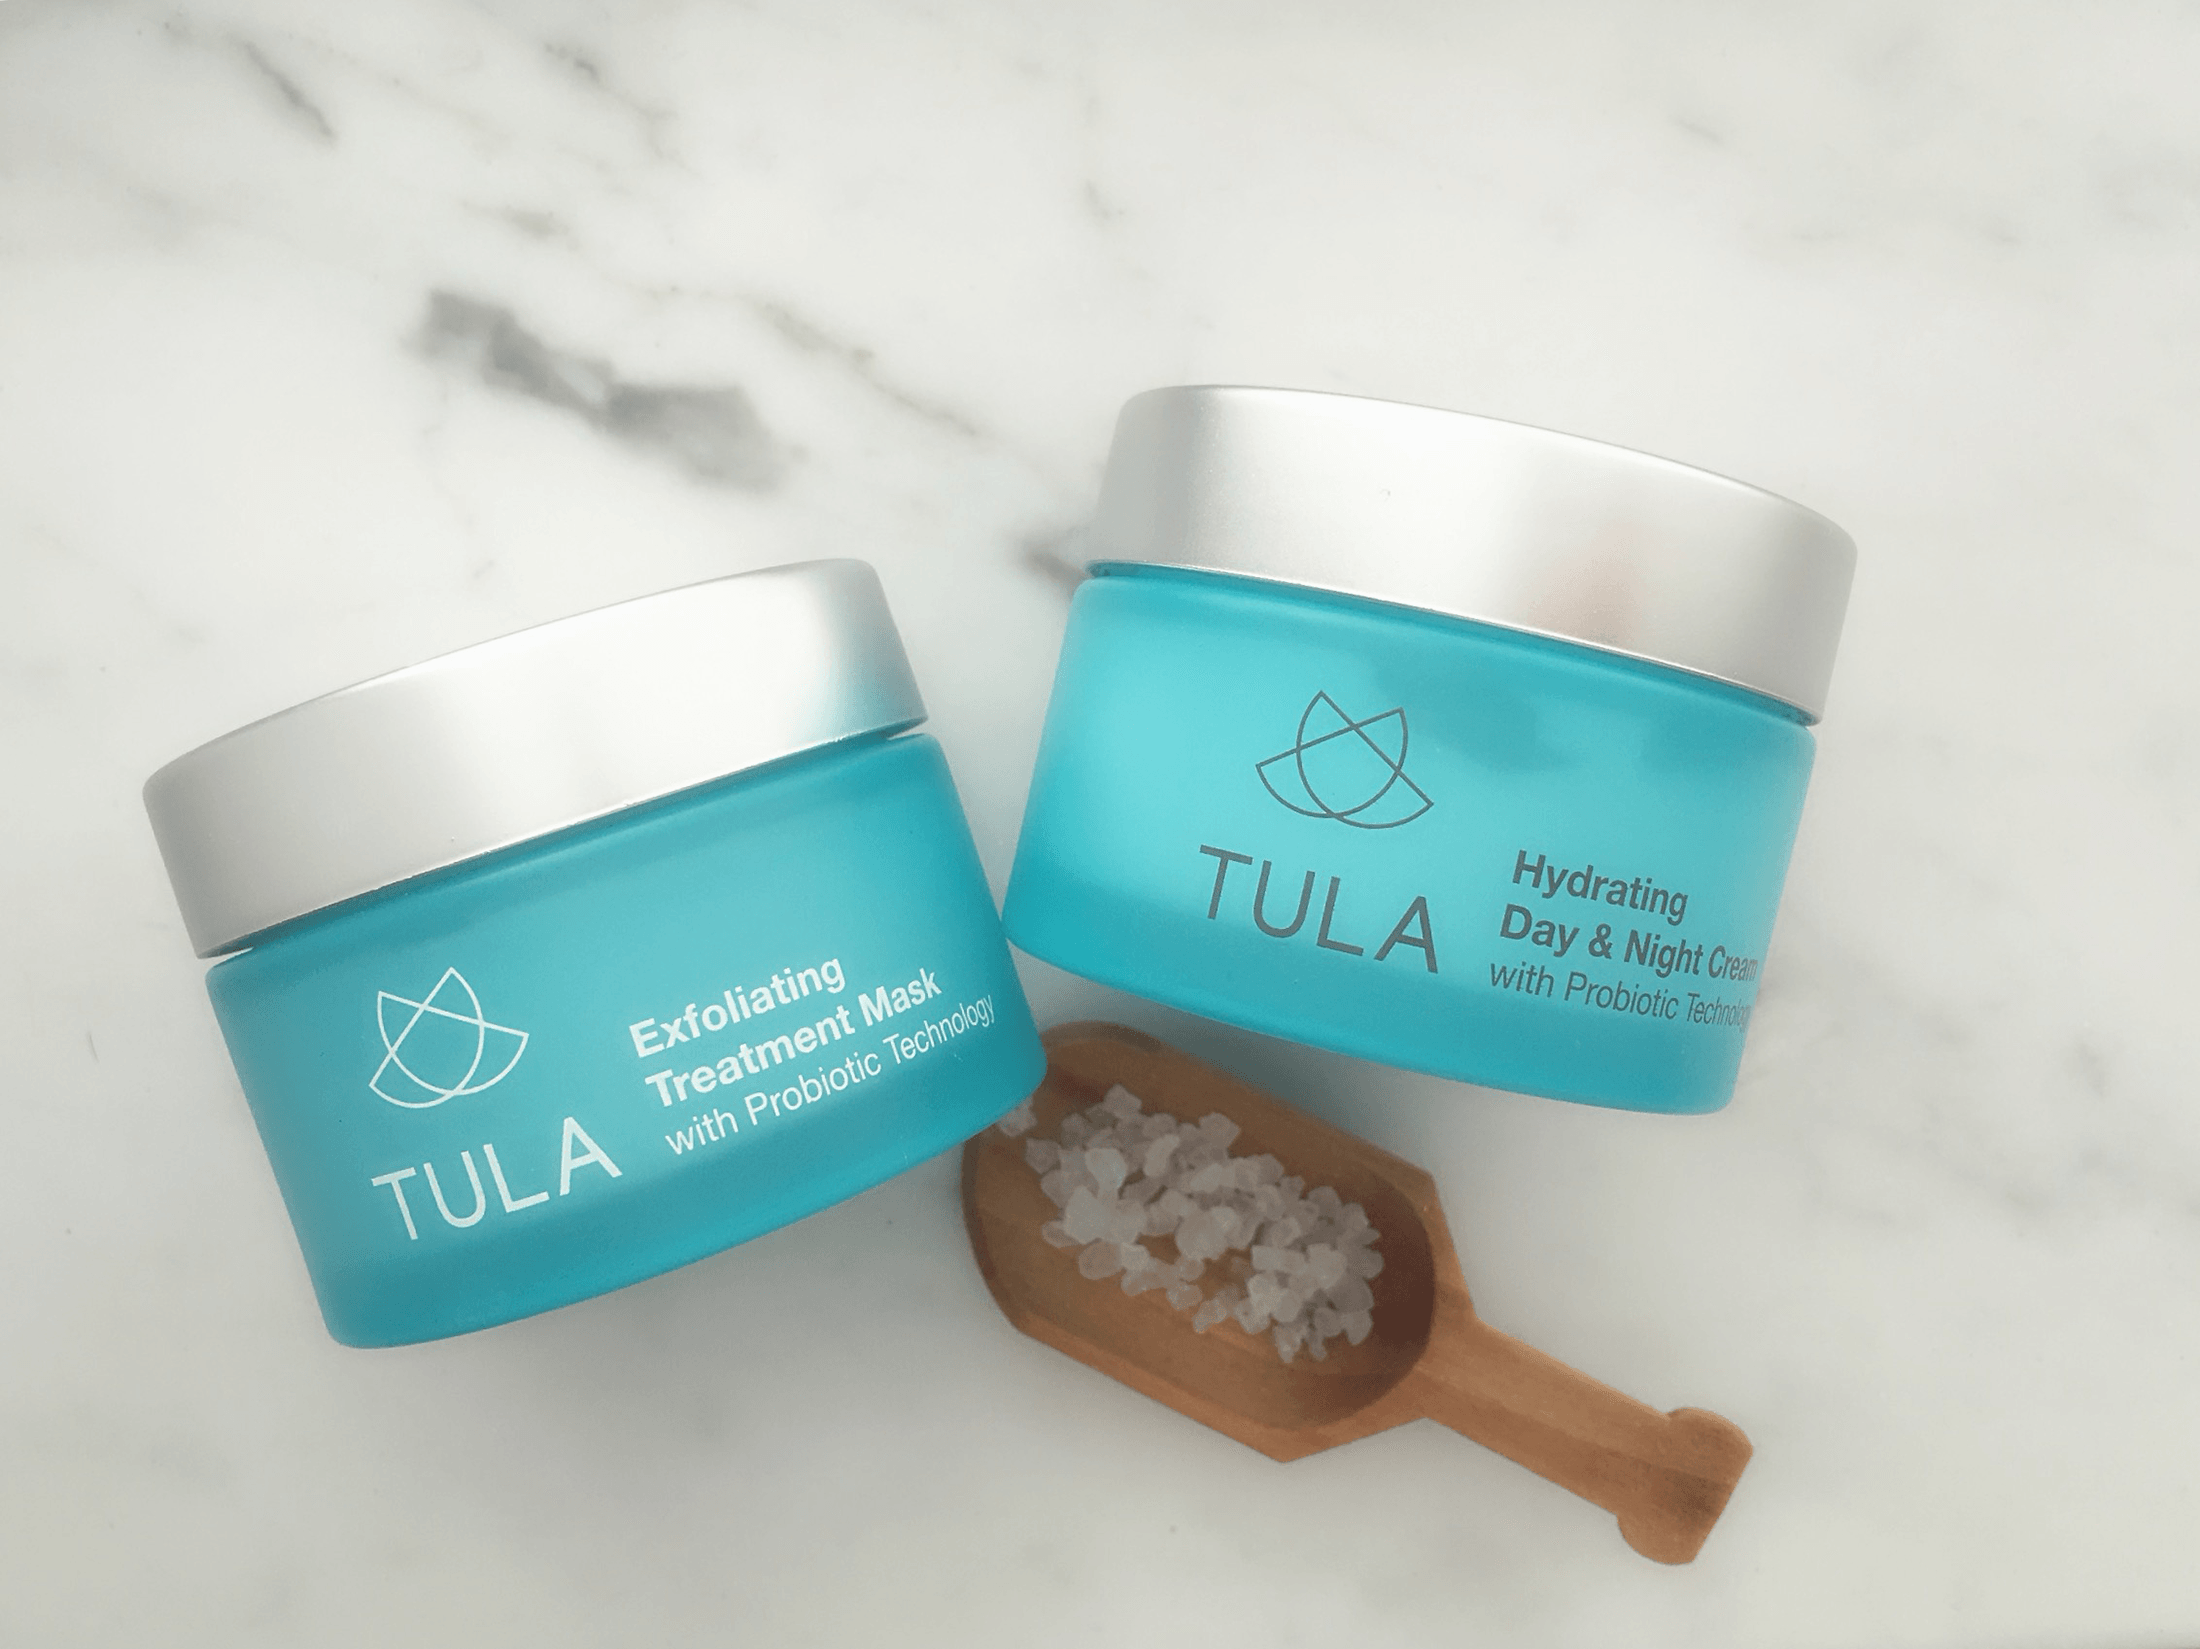 Tula-skin-care-exfoliating-mask-and-hydrating-day-and-night-cream